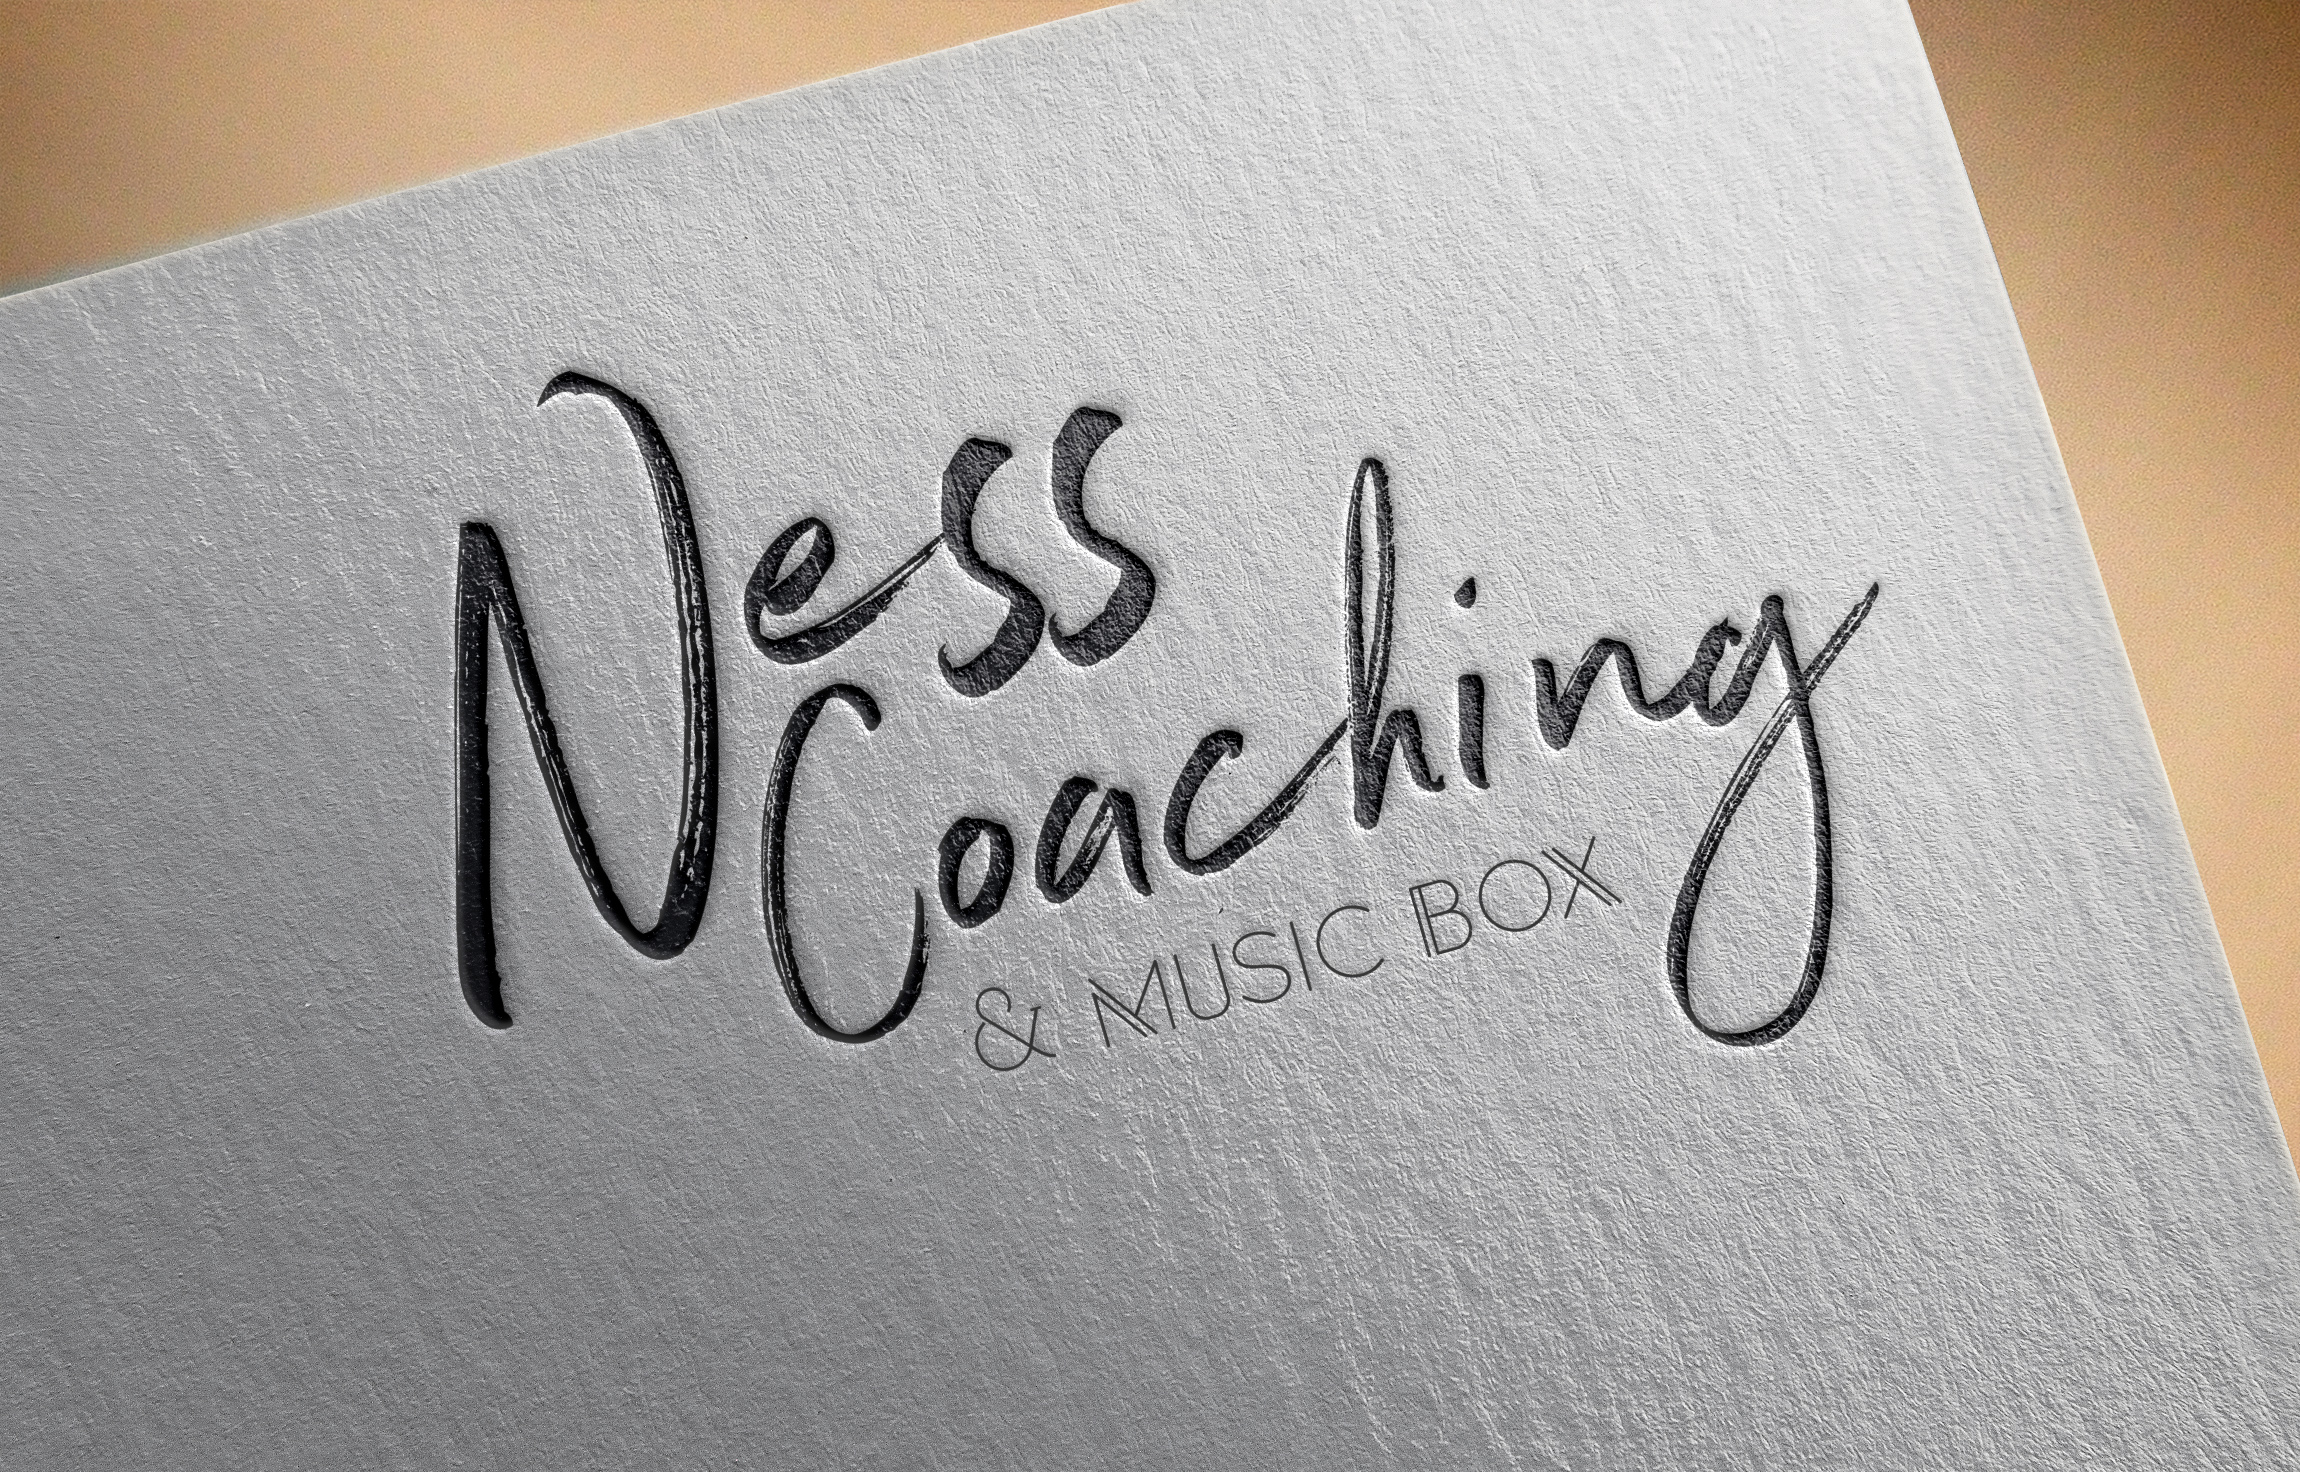 Ness Coaching & Music Box